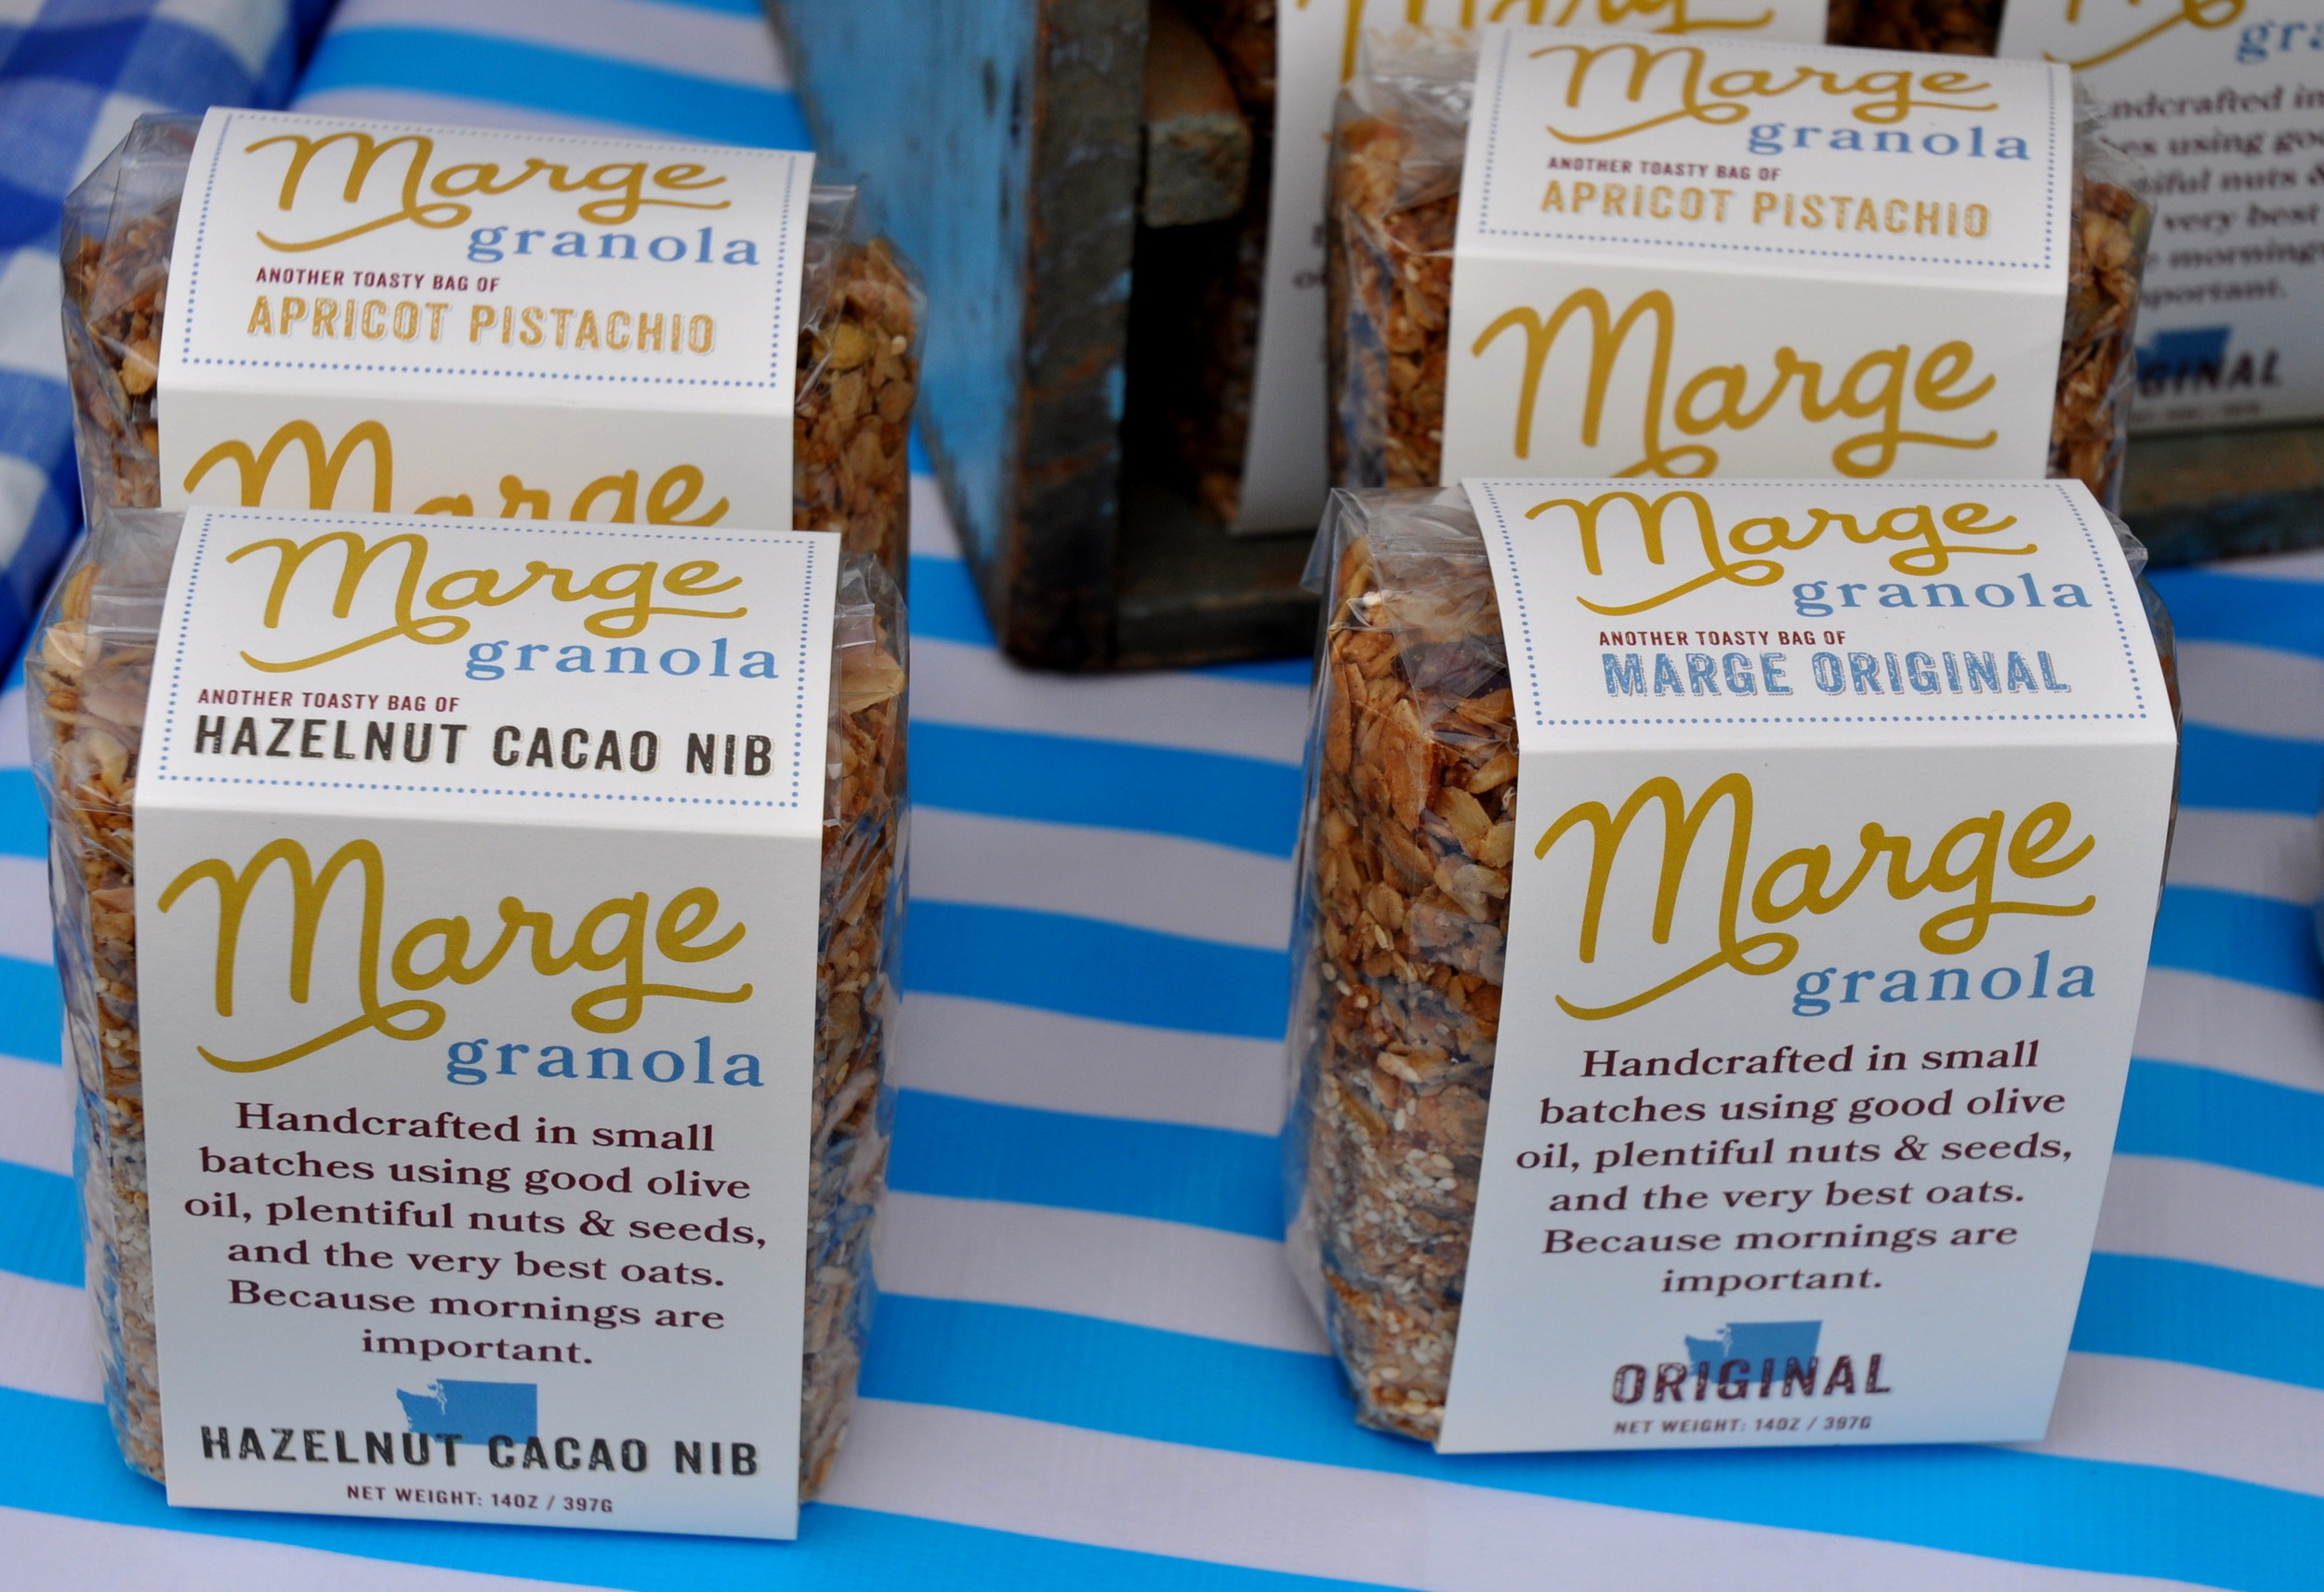 Marge Granola. Photo copyright 2013 by Zachary D. Lyons.